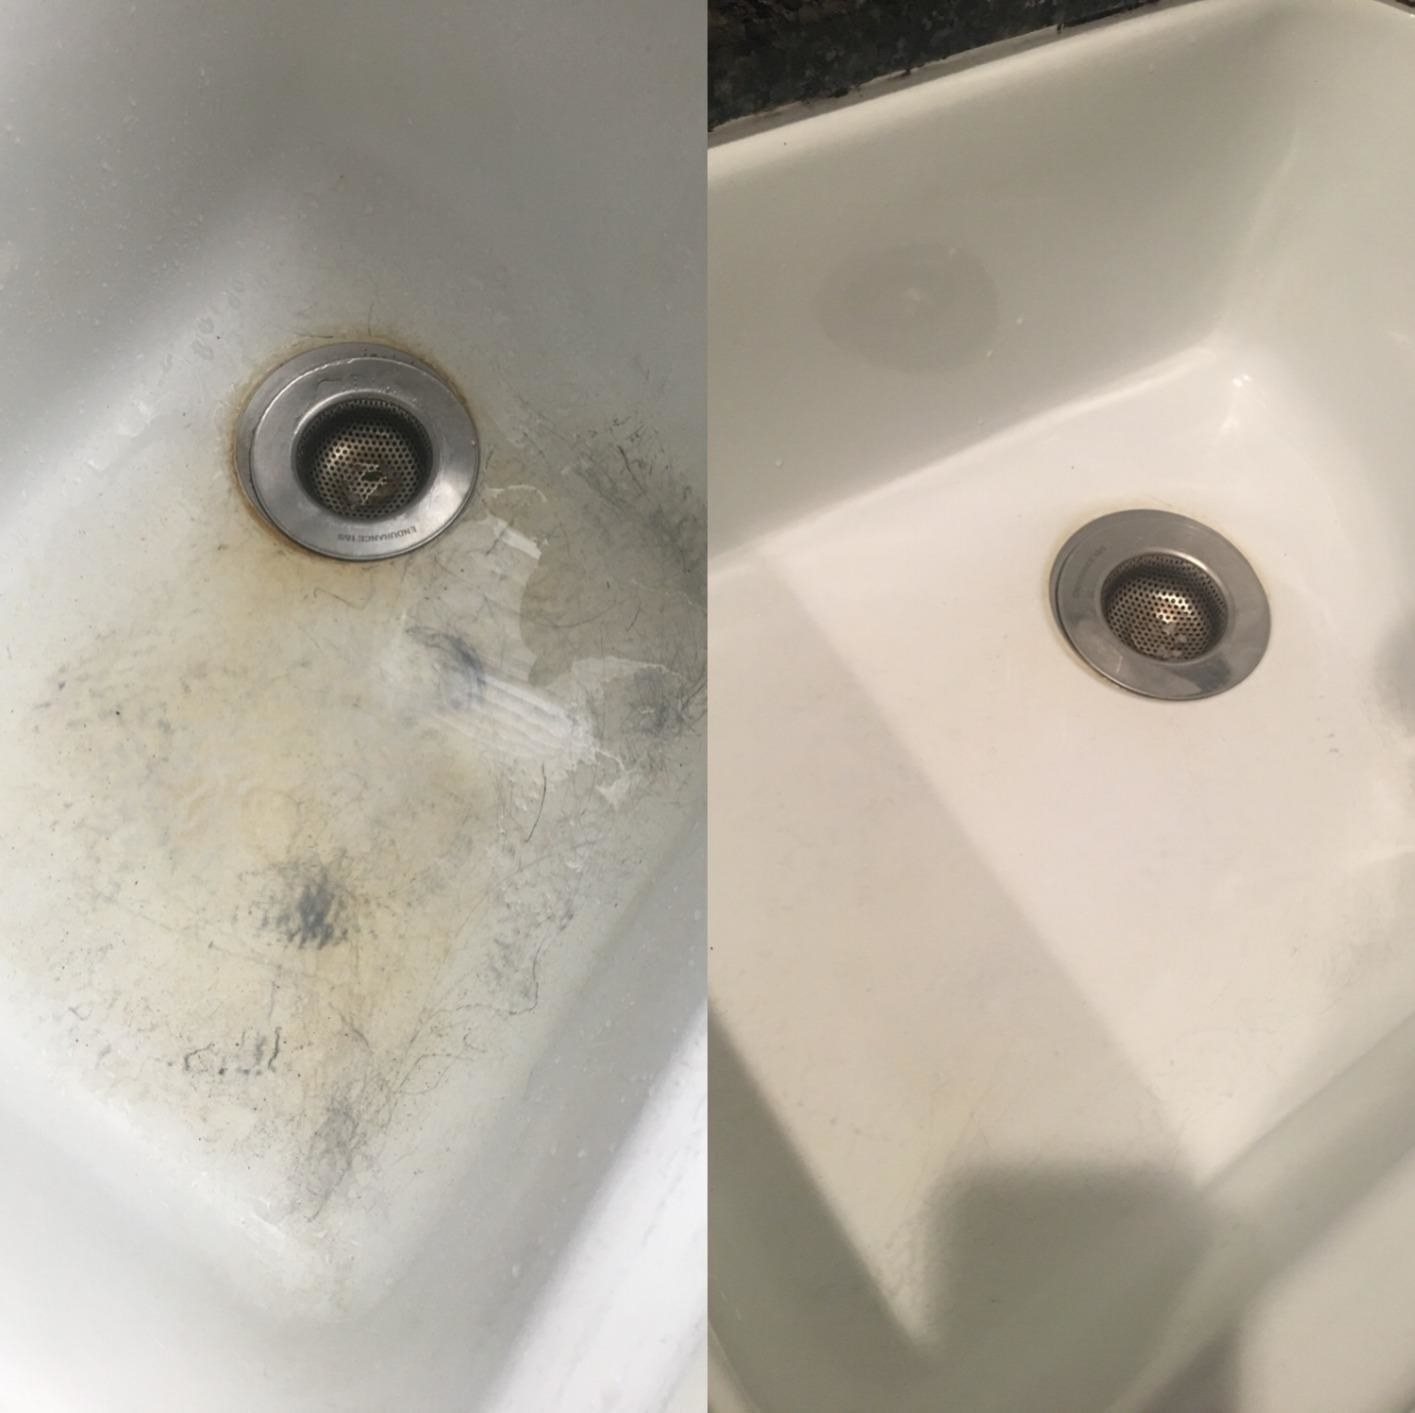 a reviewer's before and after shot of a scuffed up sink that's clean after use